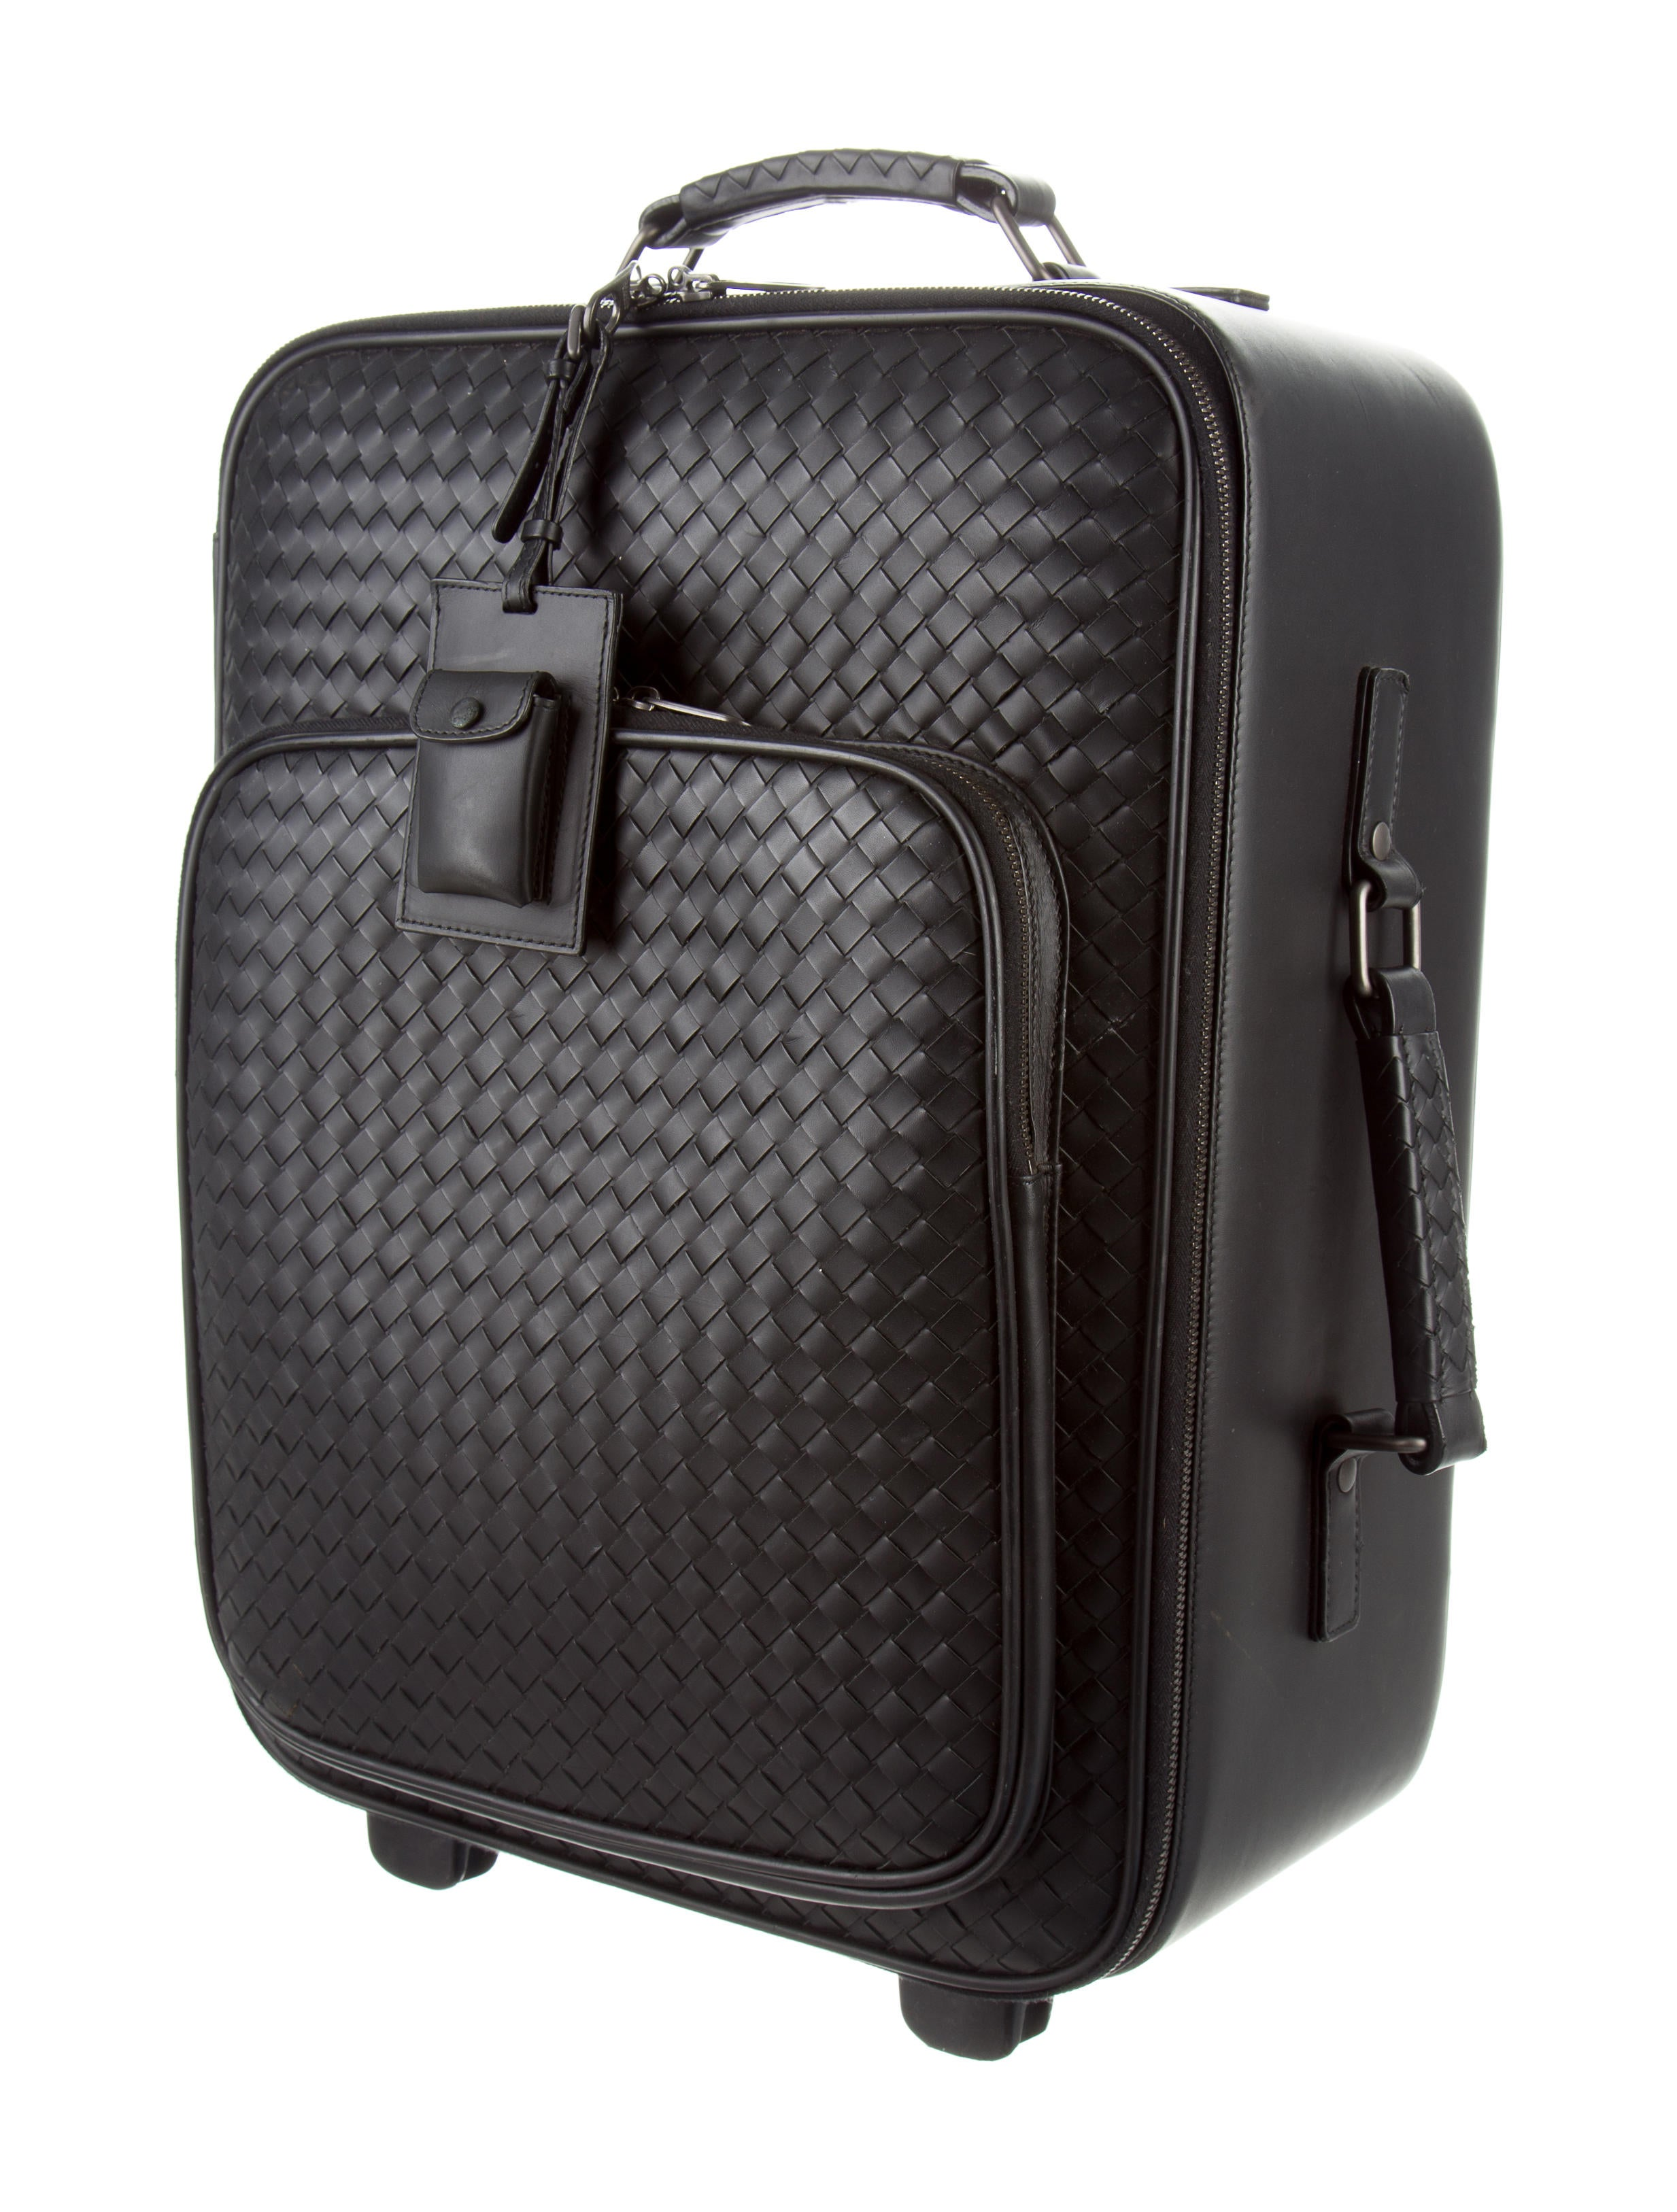 Bottega Veneta Intrecciato Trolley Luggage